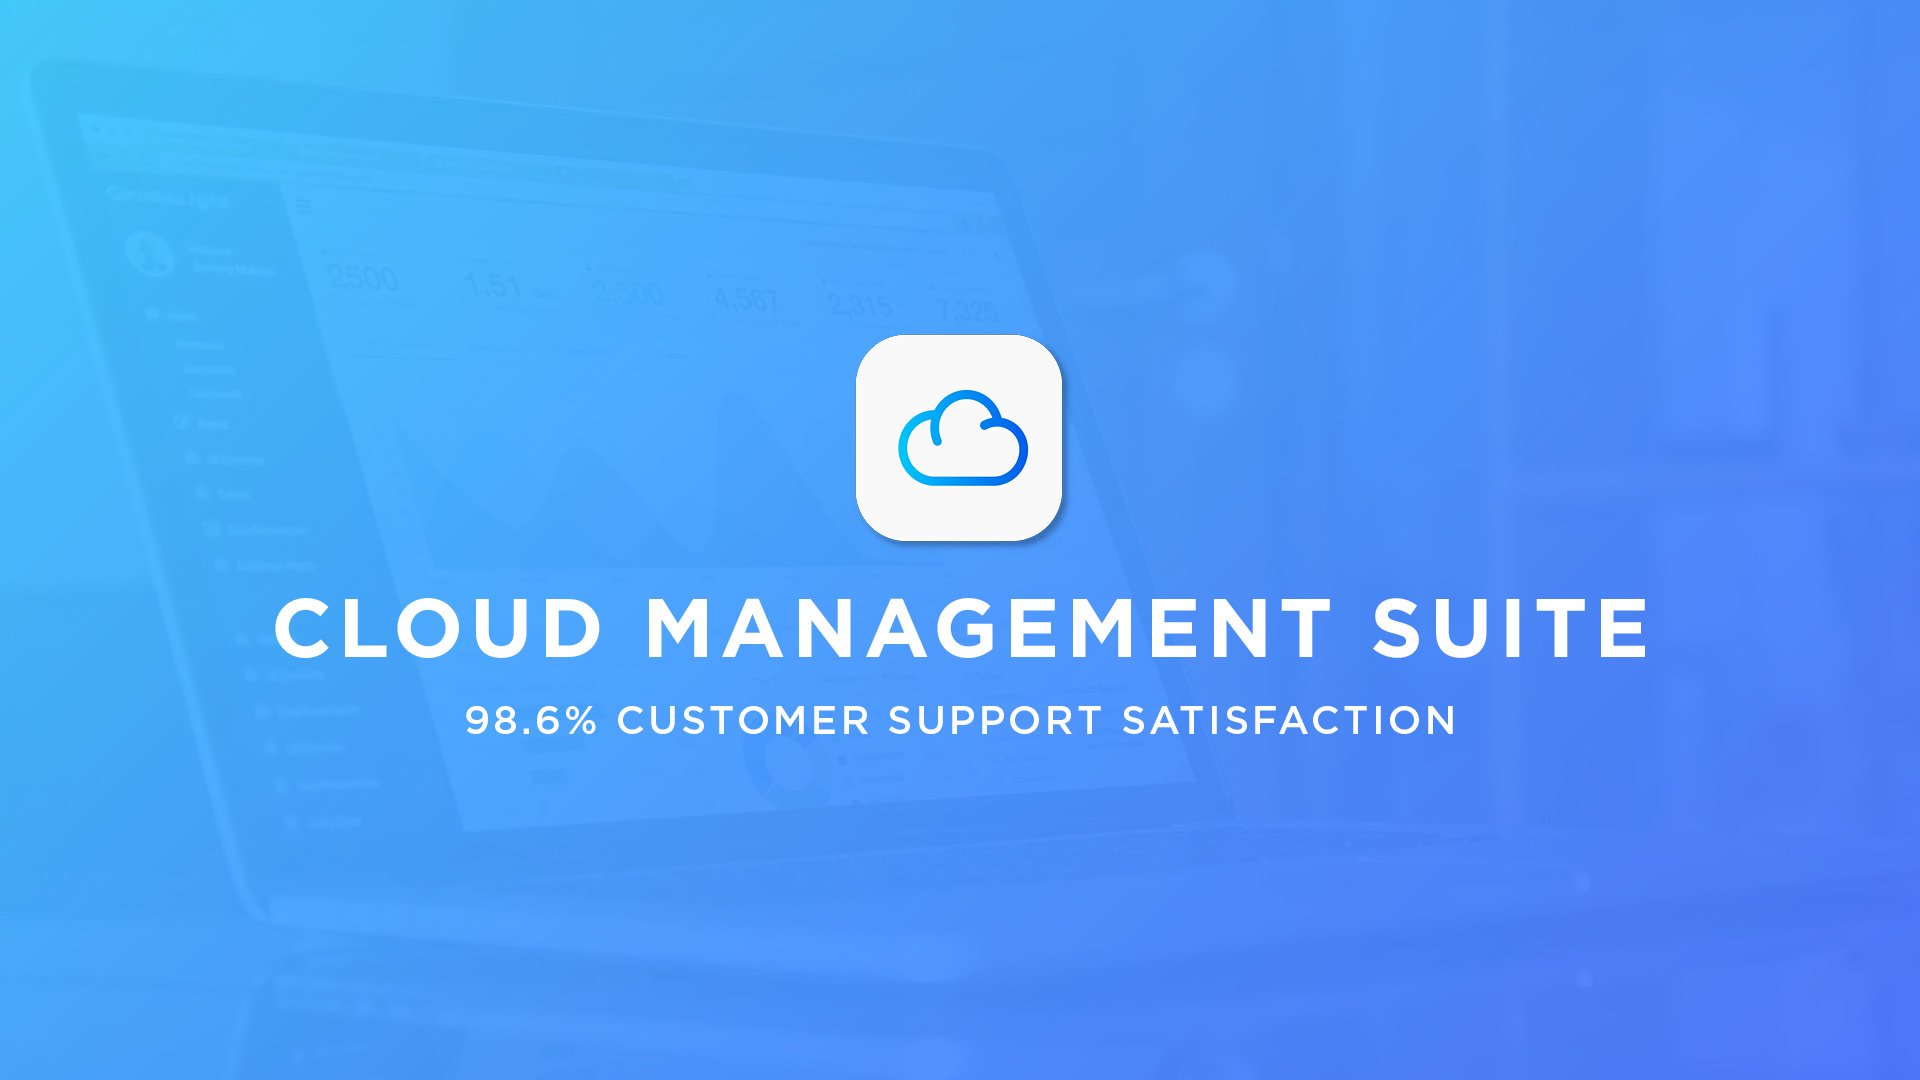 Cloud Management Suite Customer Support Satisfaction Survey Results